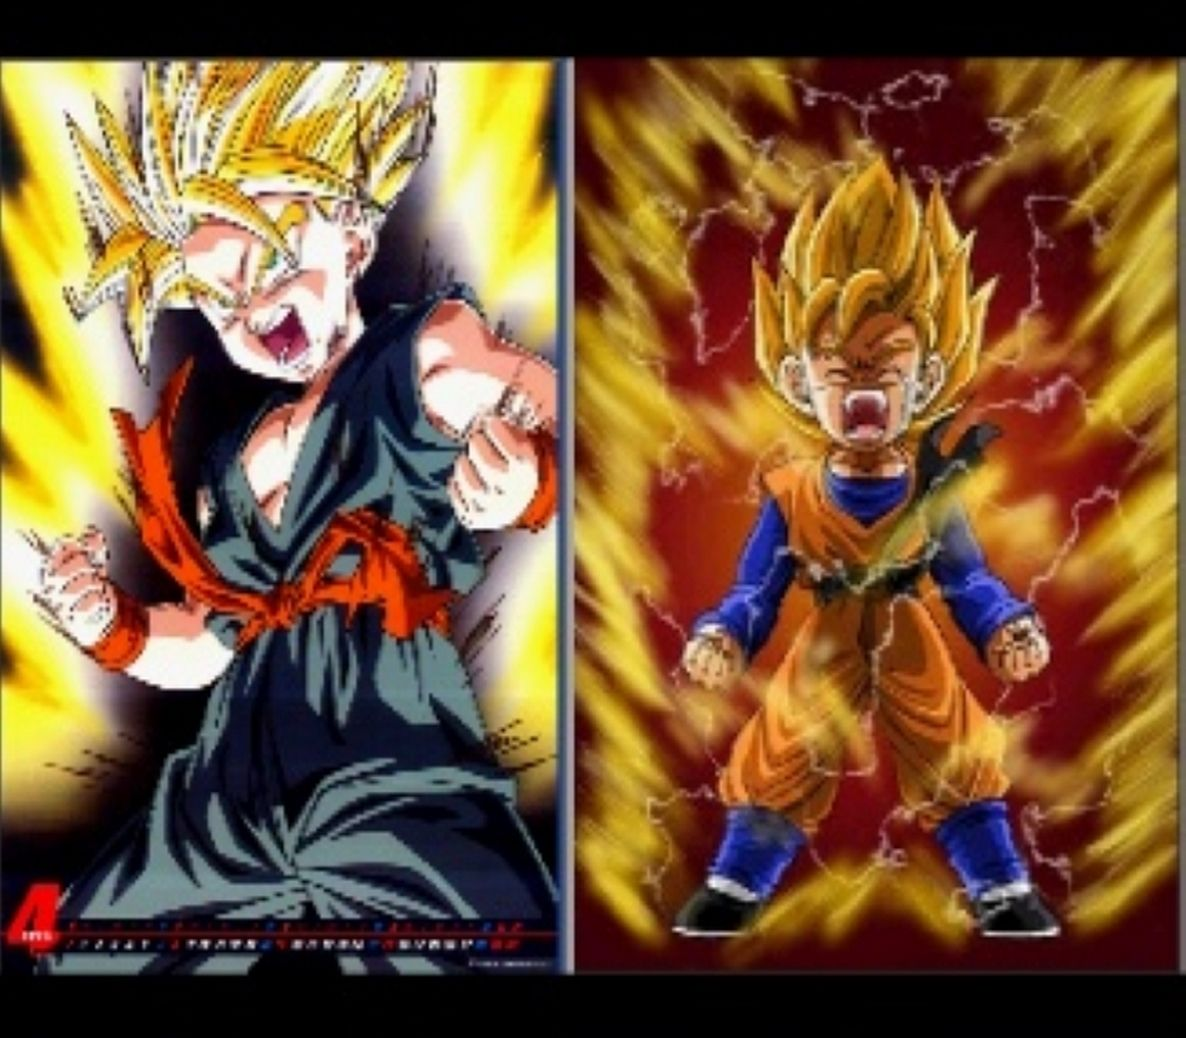 Goten And Trunks, My Favorite